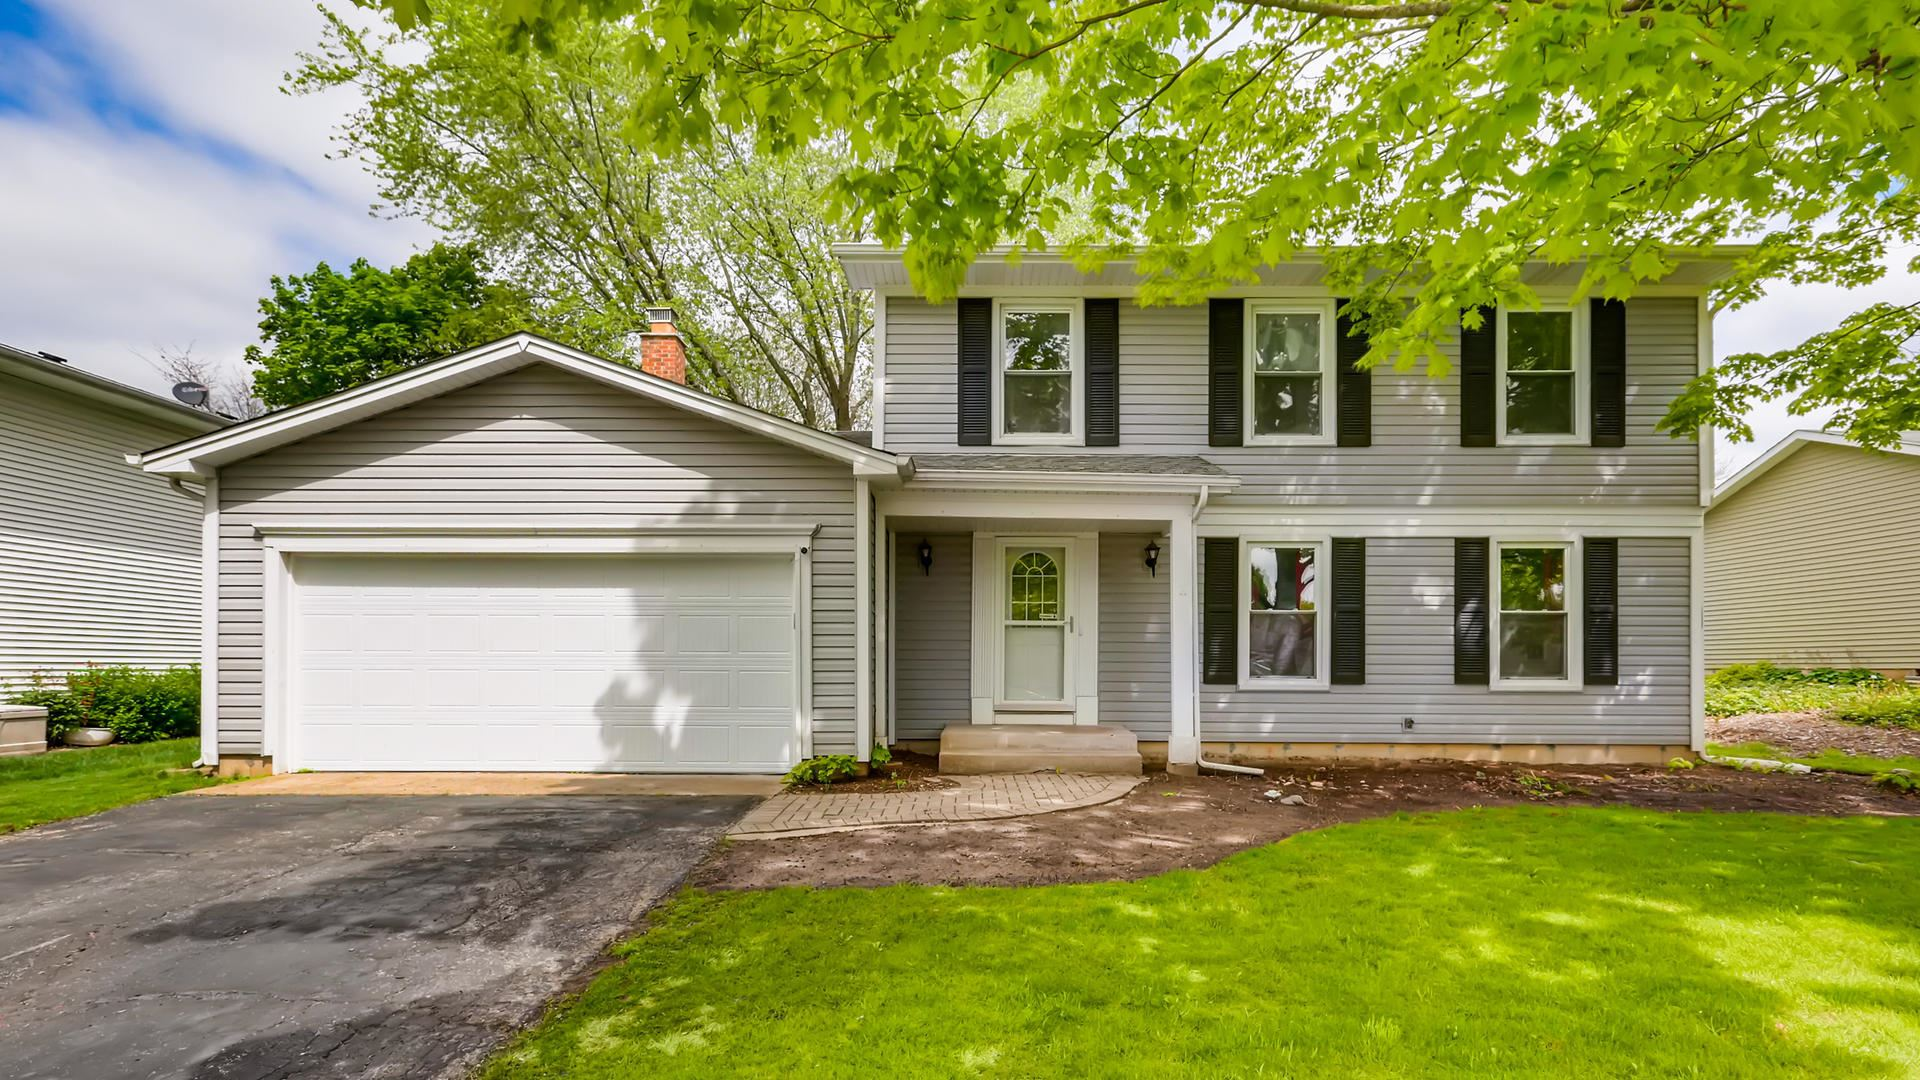 49 Duxbury Lane, Cary, IL 60013 - MLS#: 10721616